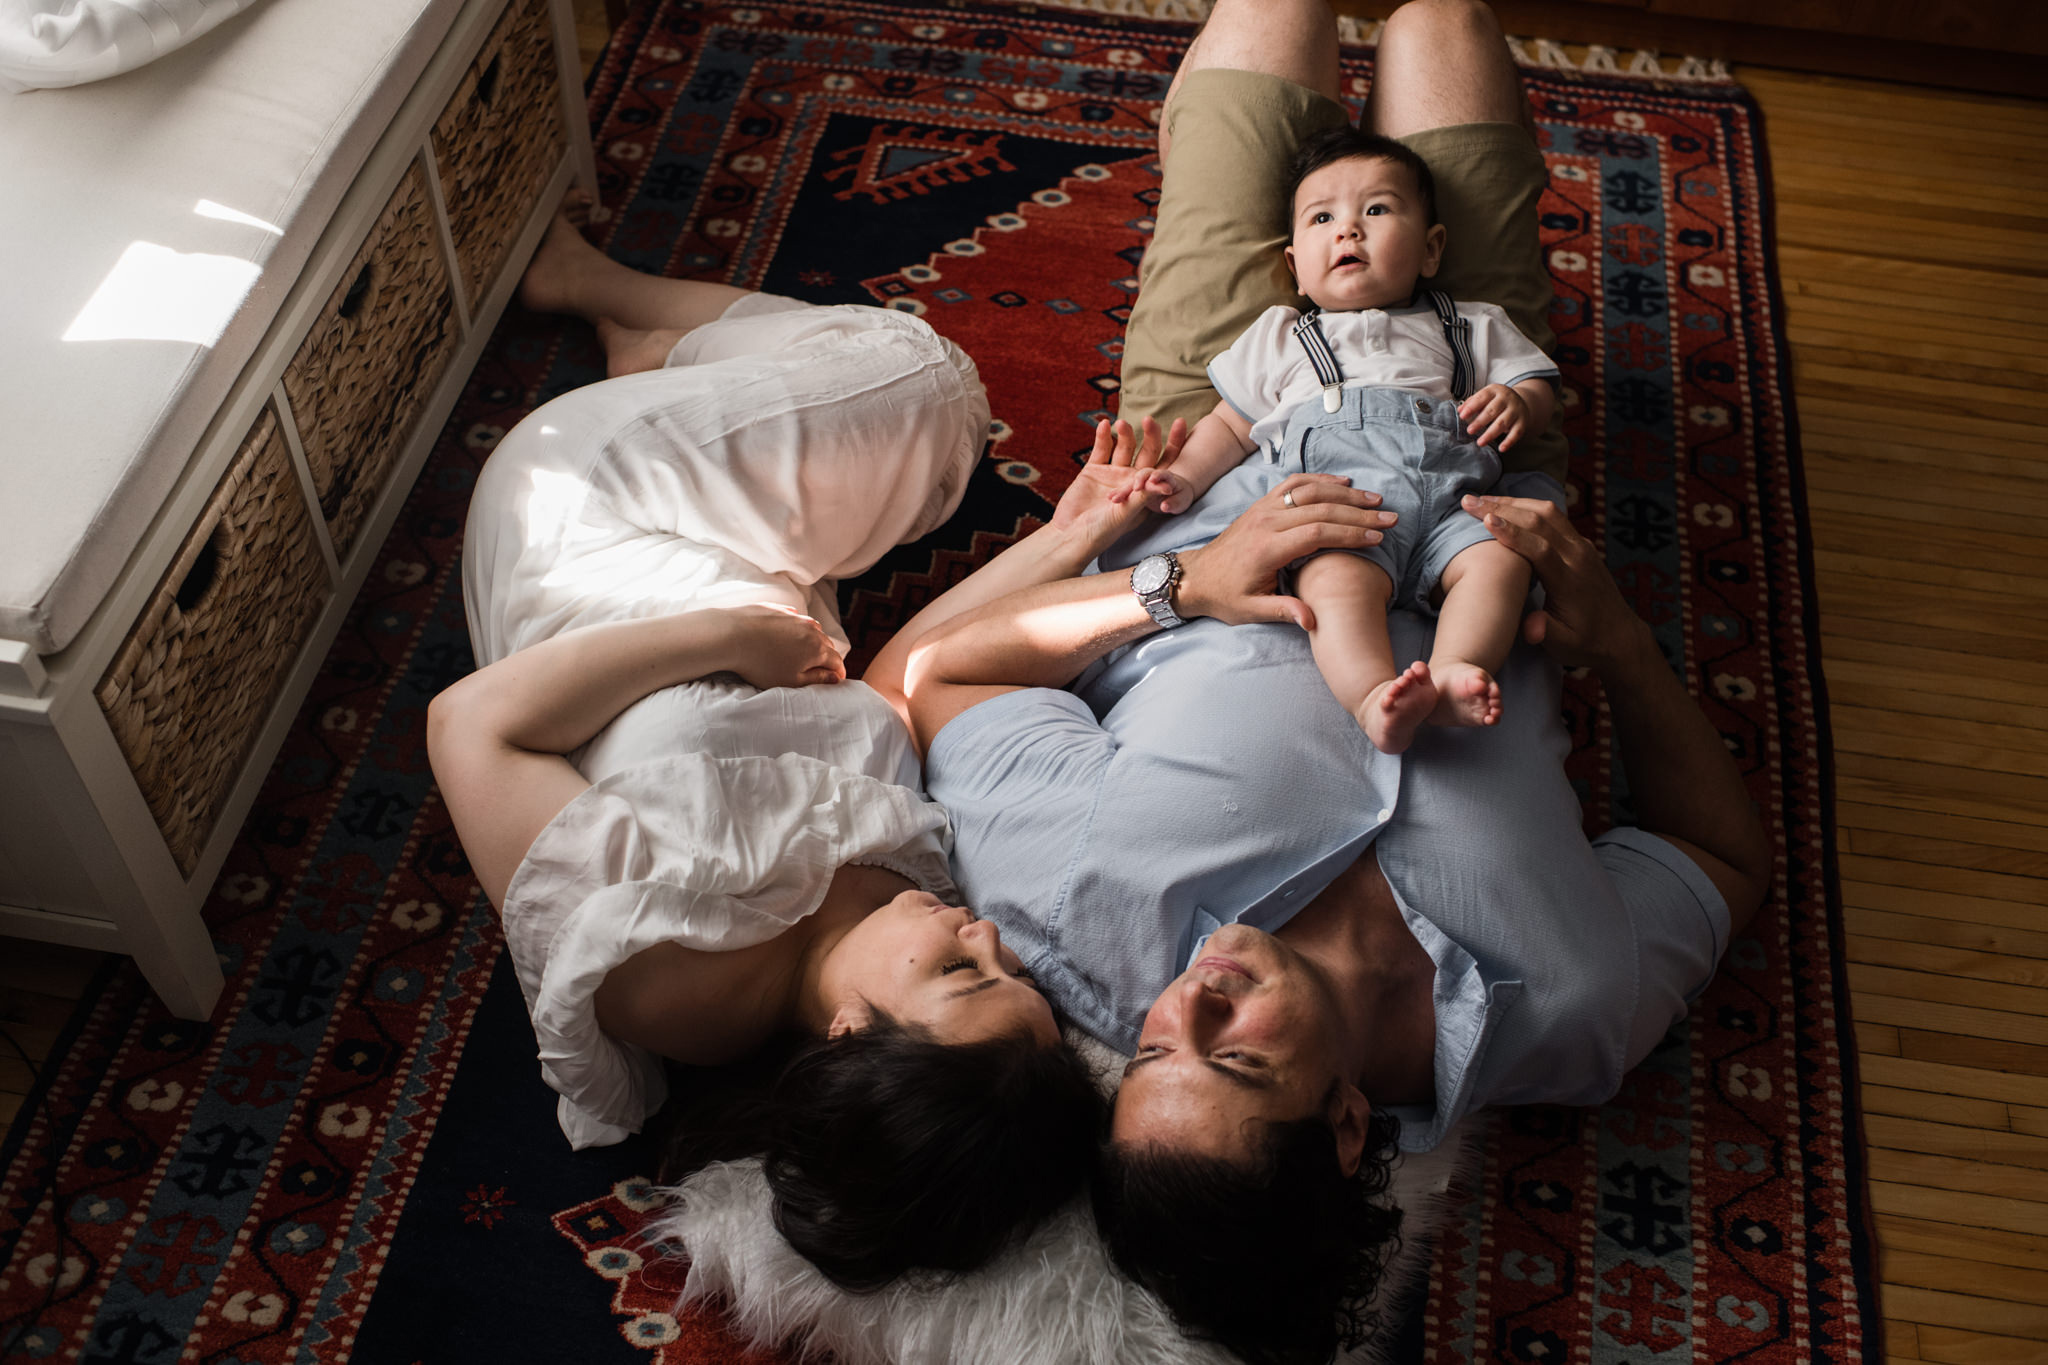 161-at-home-6-month-baby-family-documentary-session.jpg